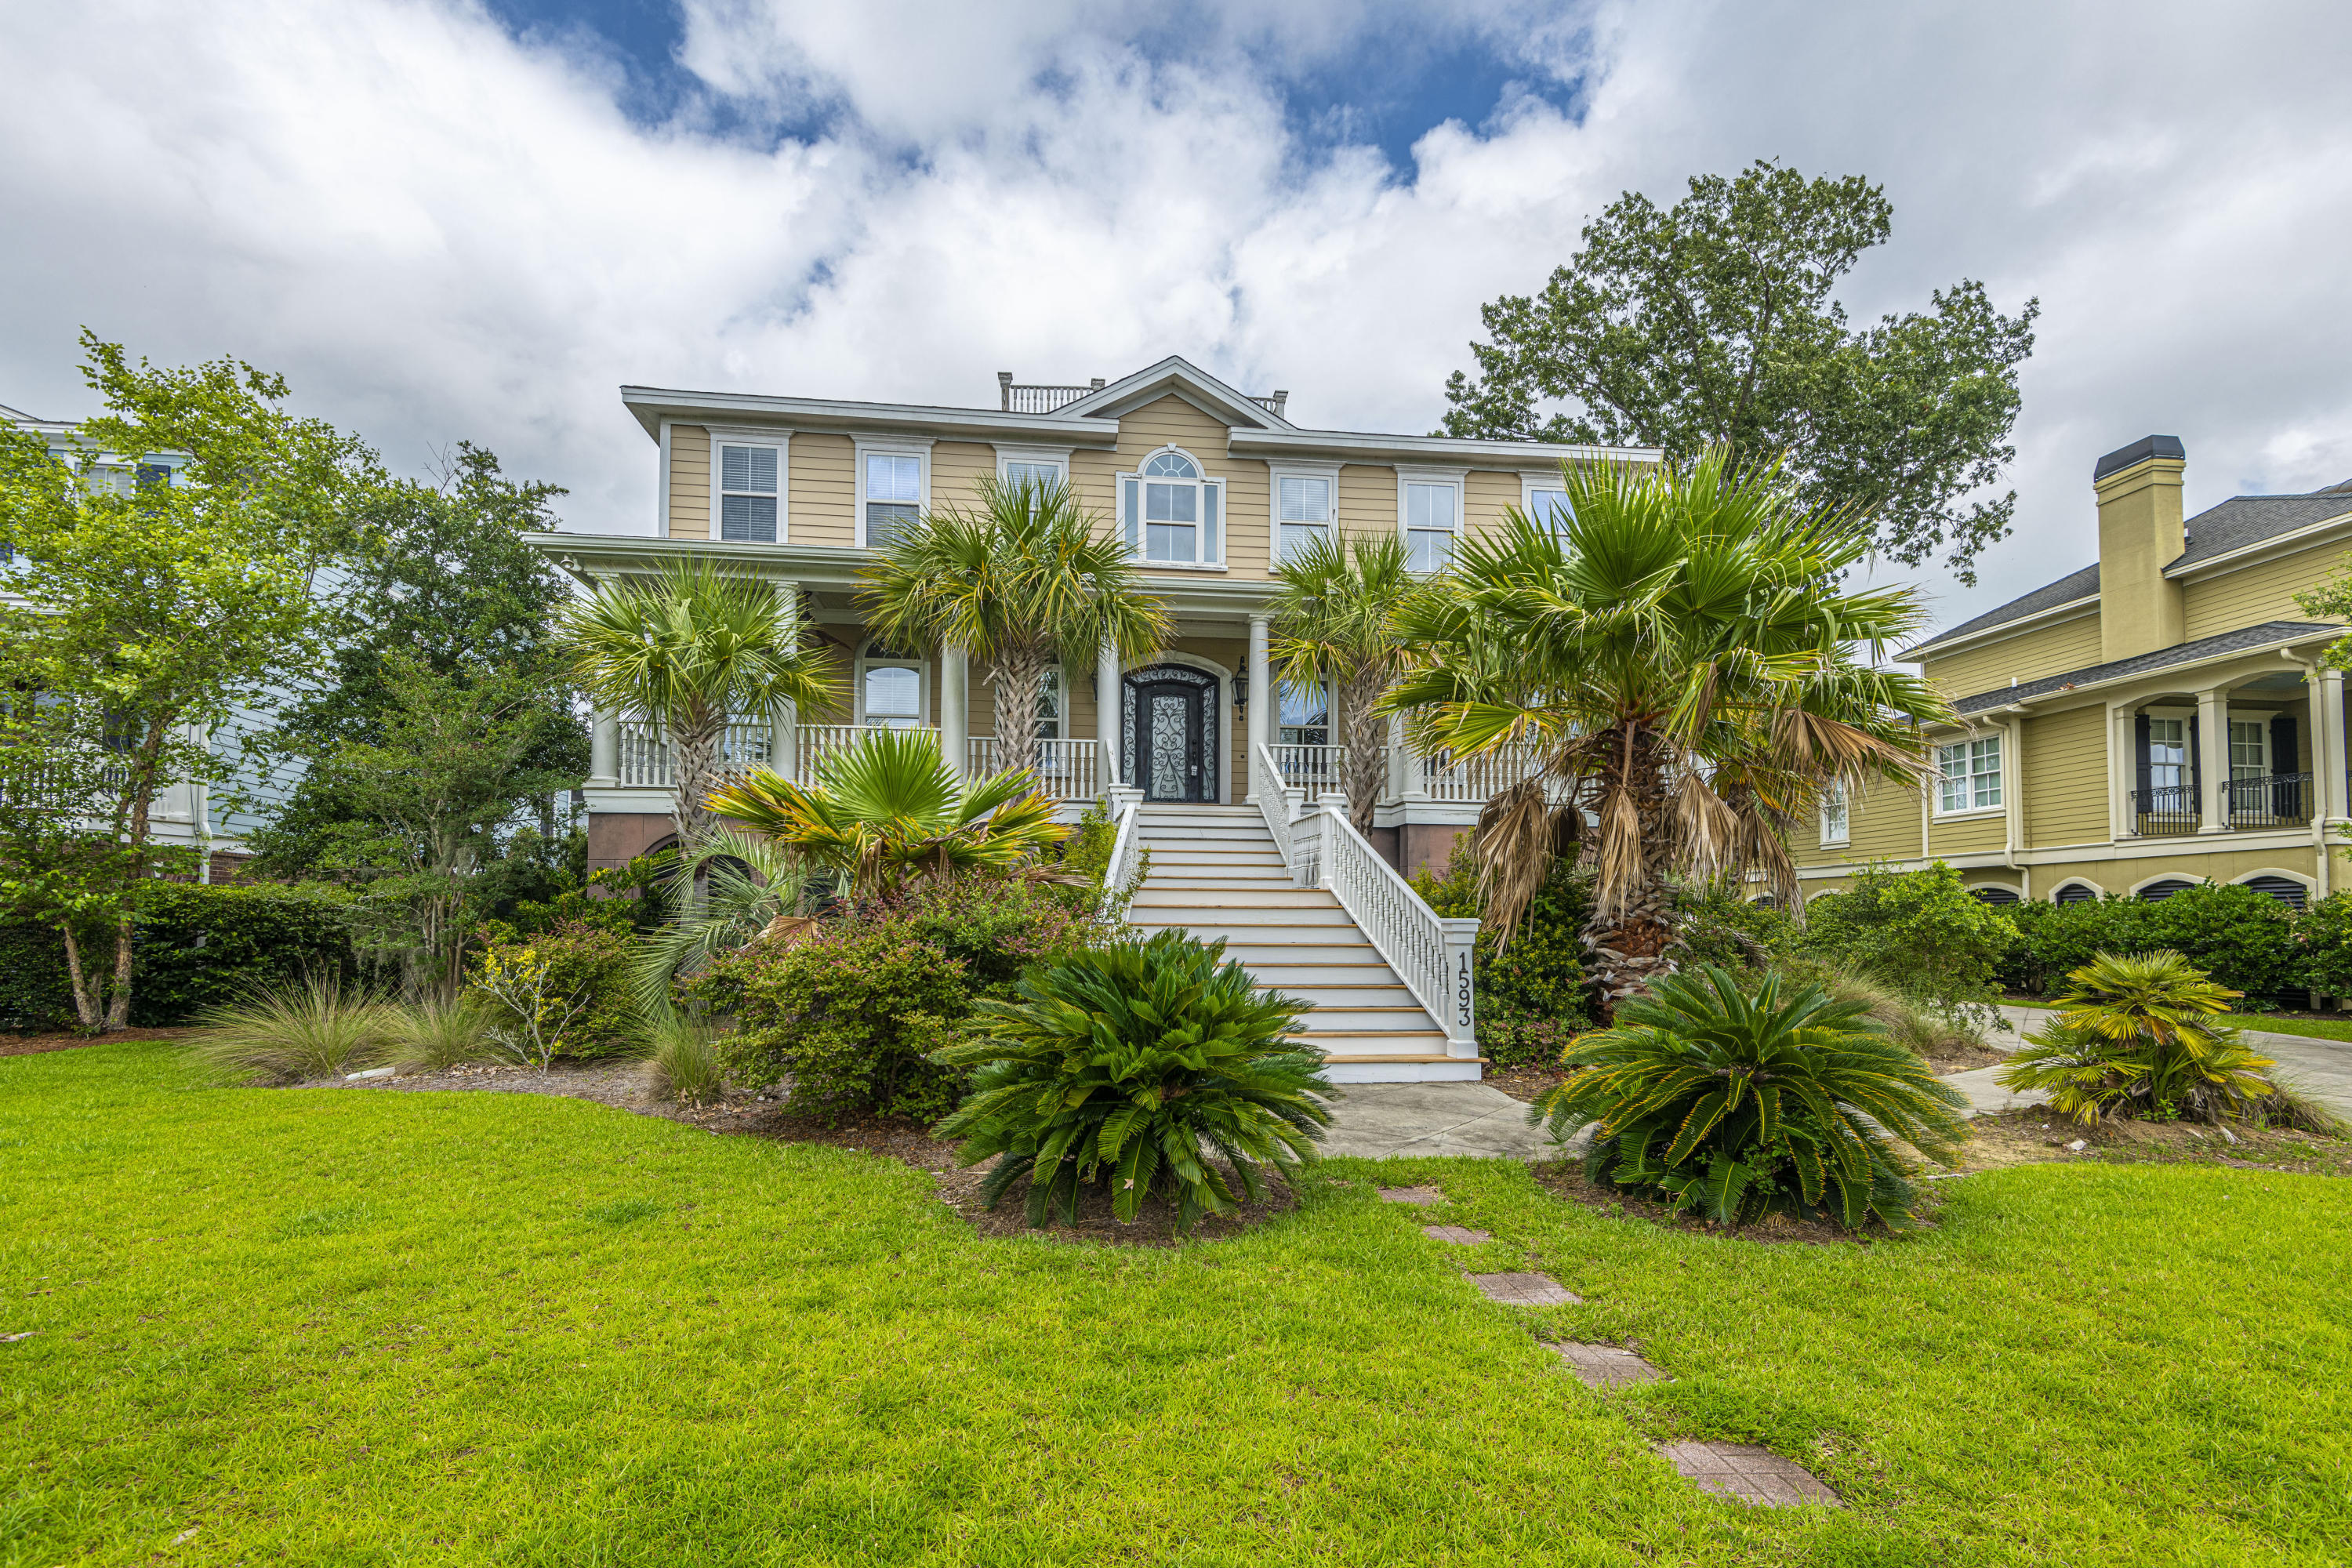 Rivertowne Country Club Homes For Sale - 1593 Rivertowne Country Club, Mount Pleasant, SC - 9